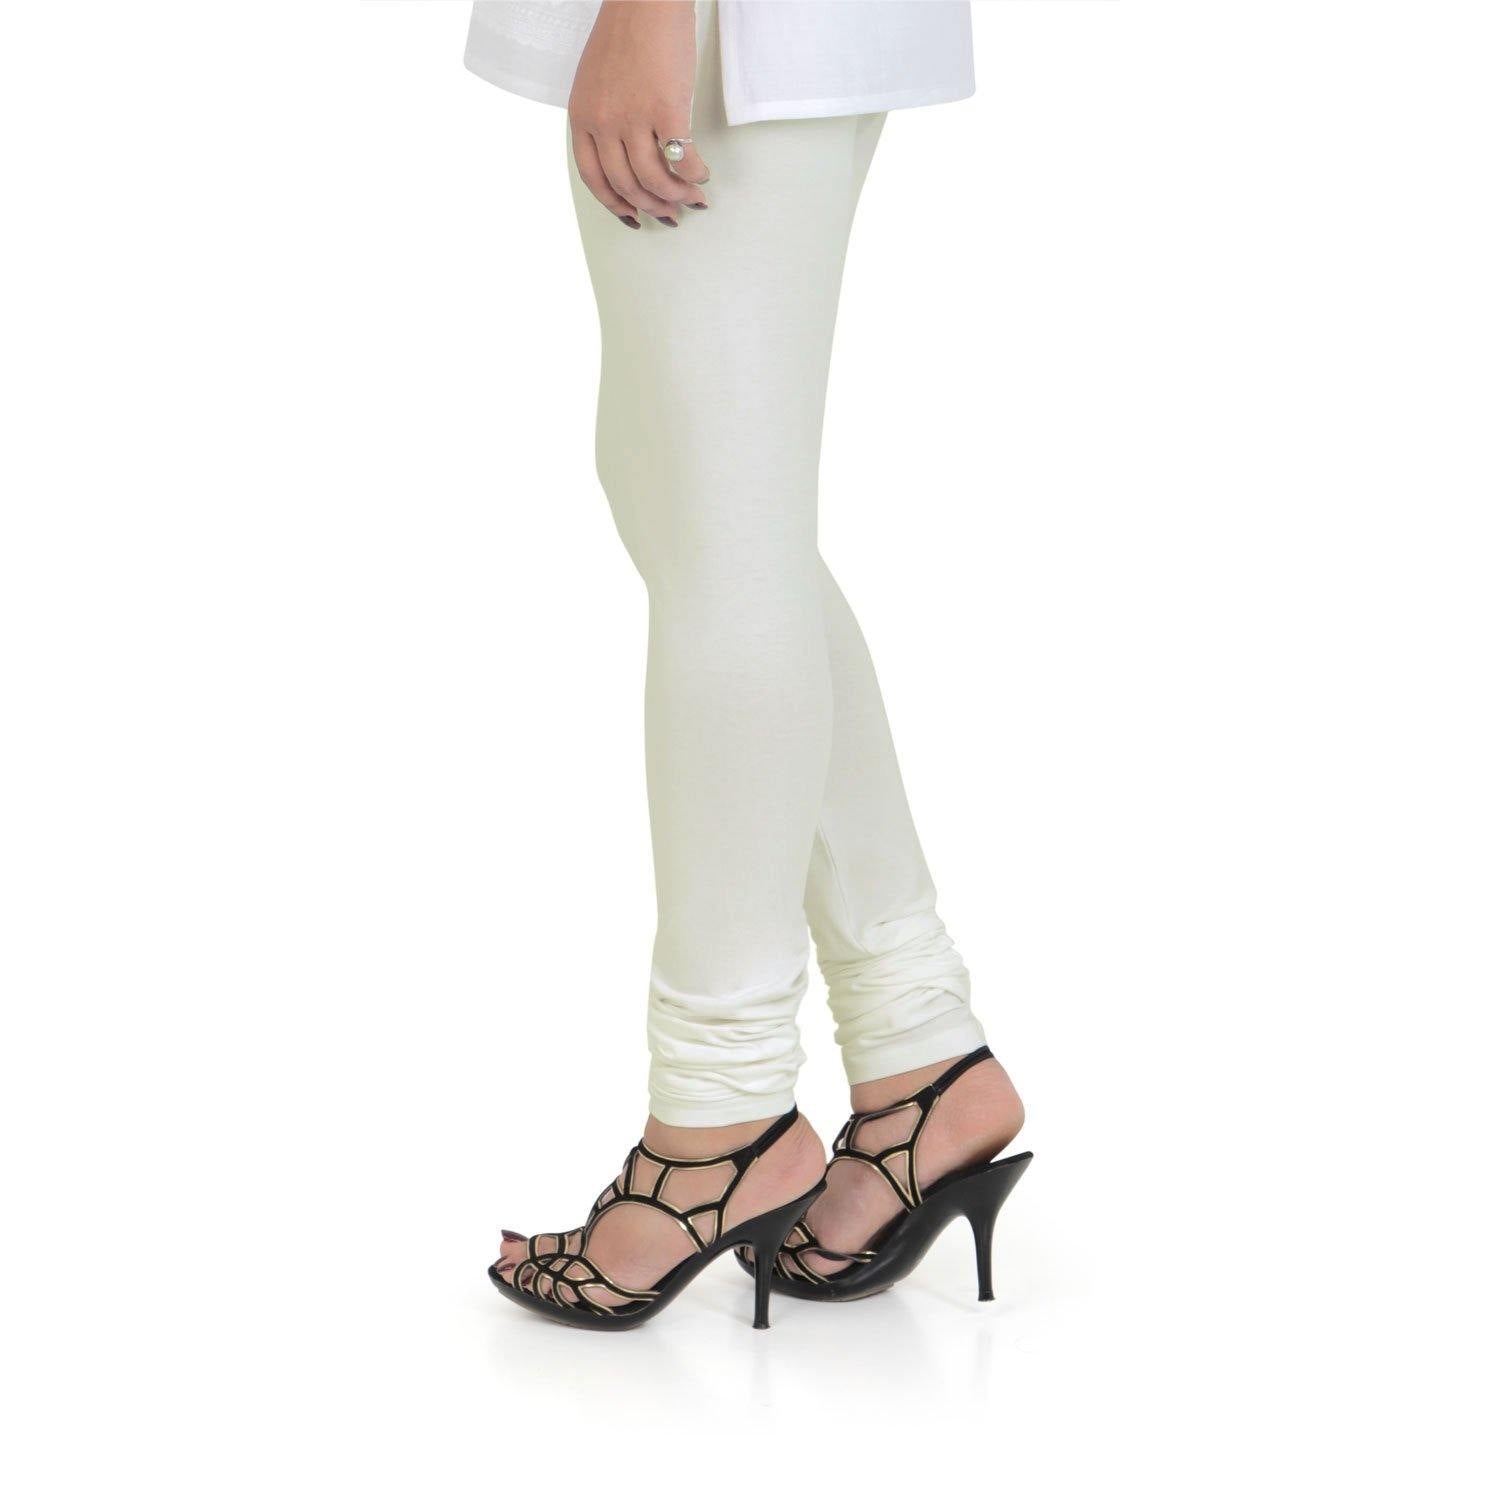 Vami Women's Cotton Stretchable Churidar Legging - Butter Milk